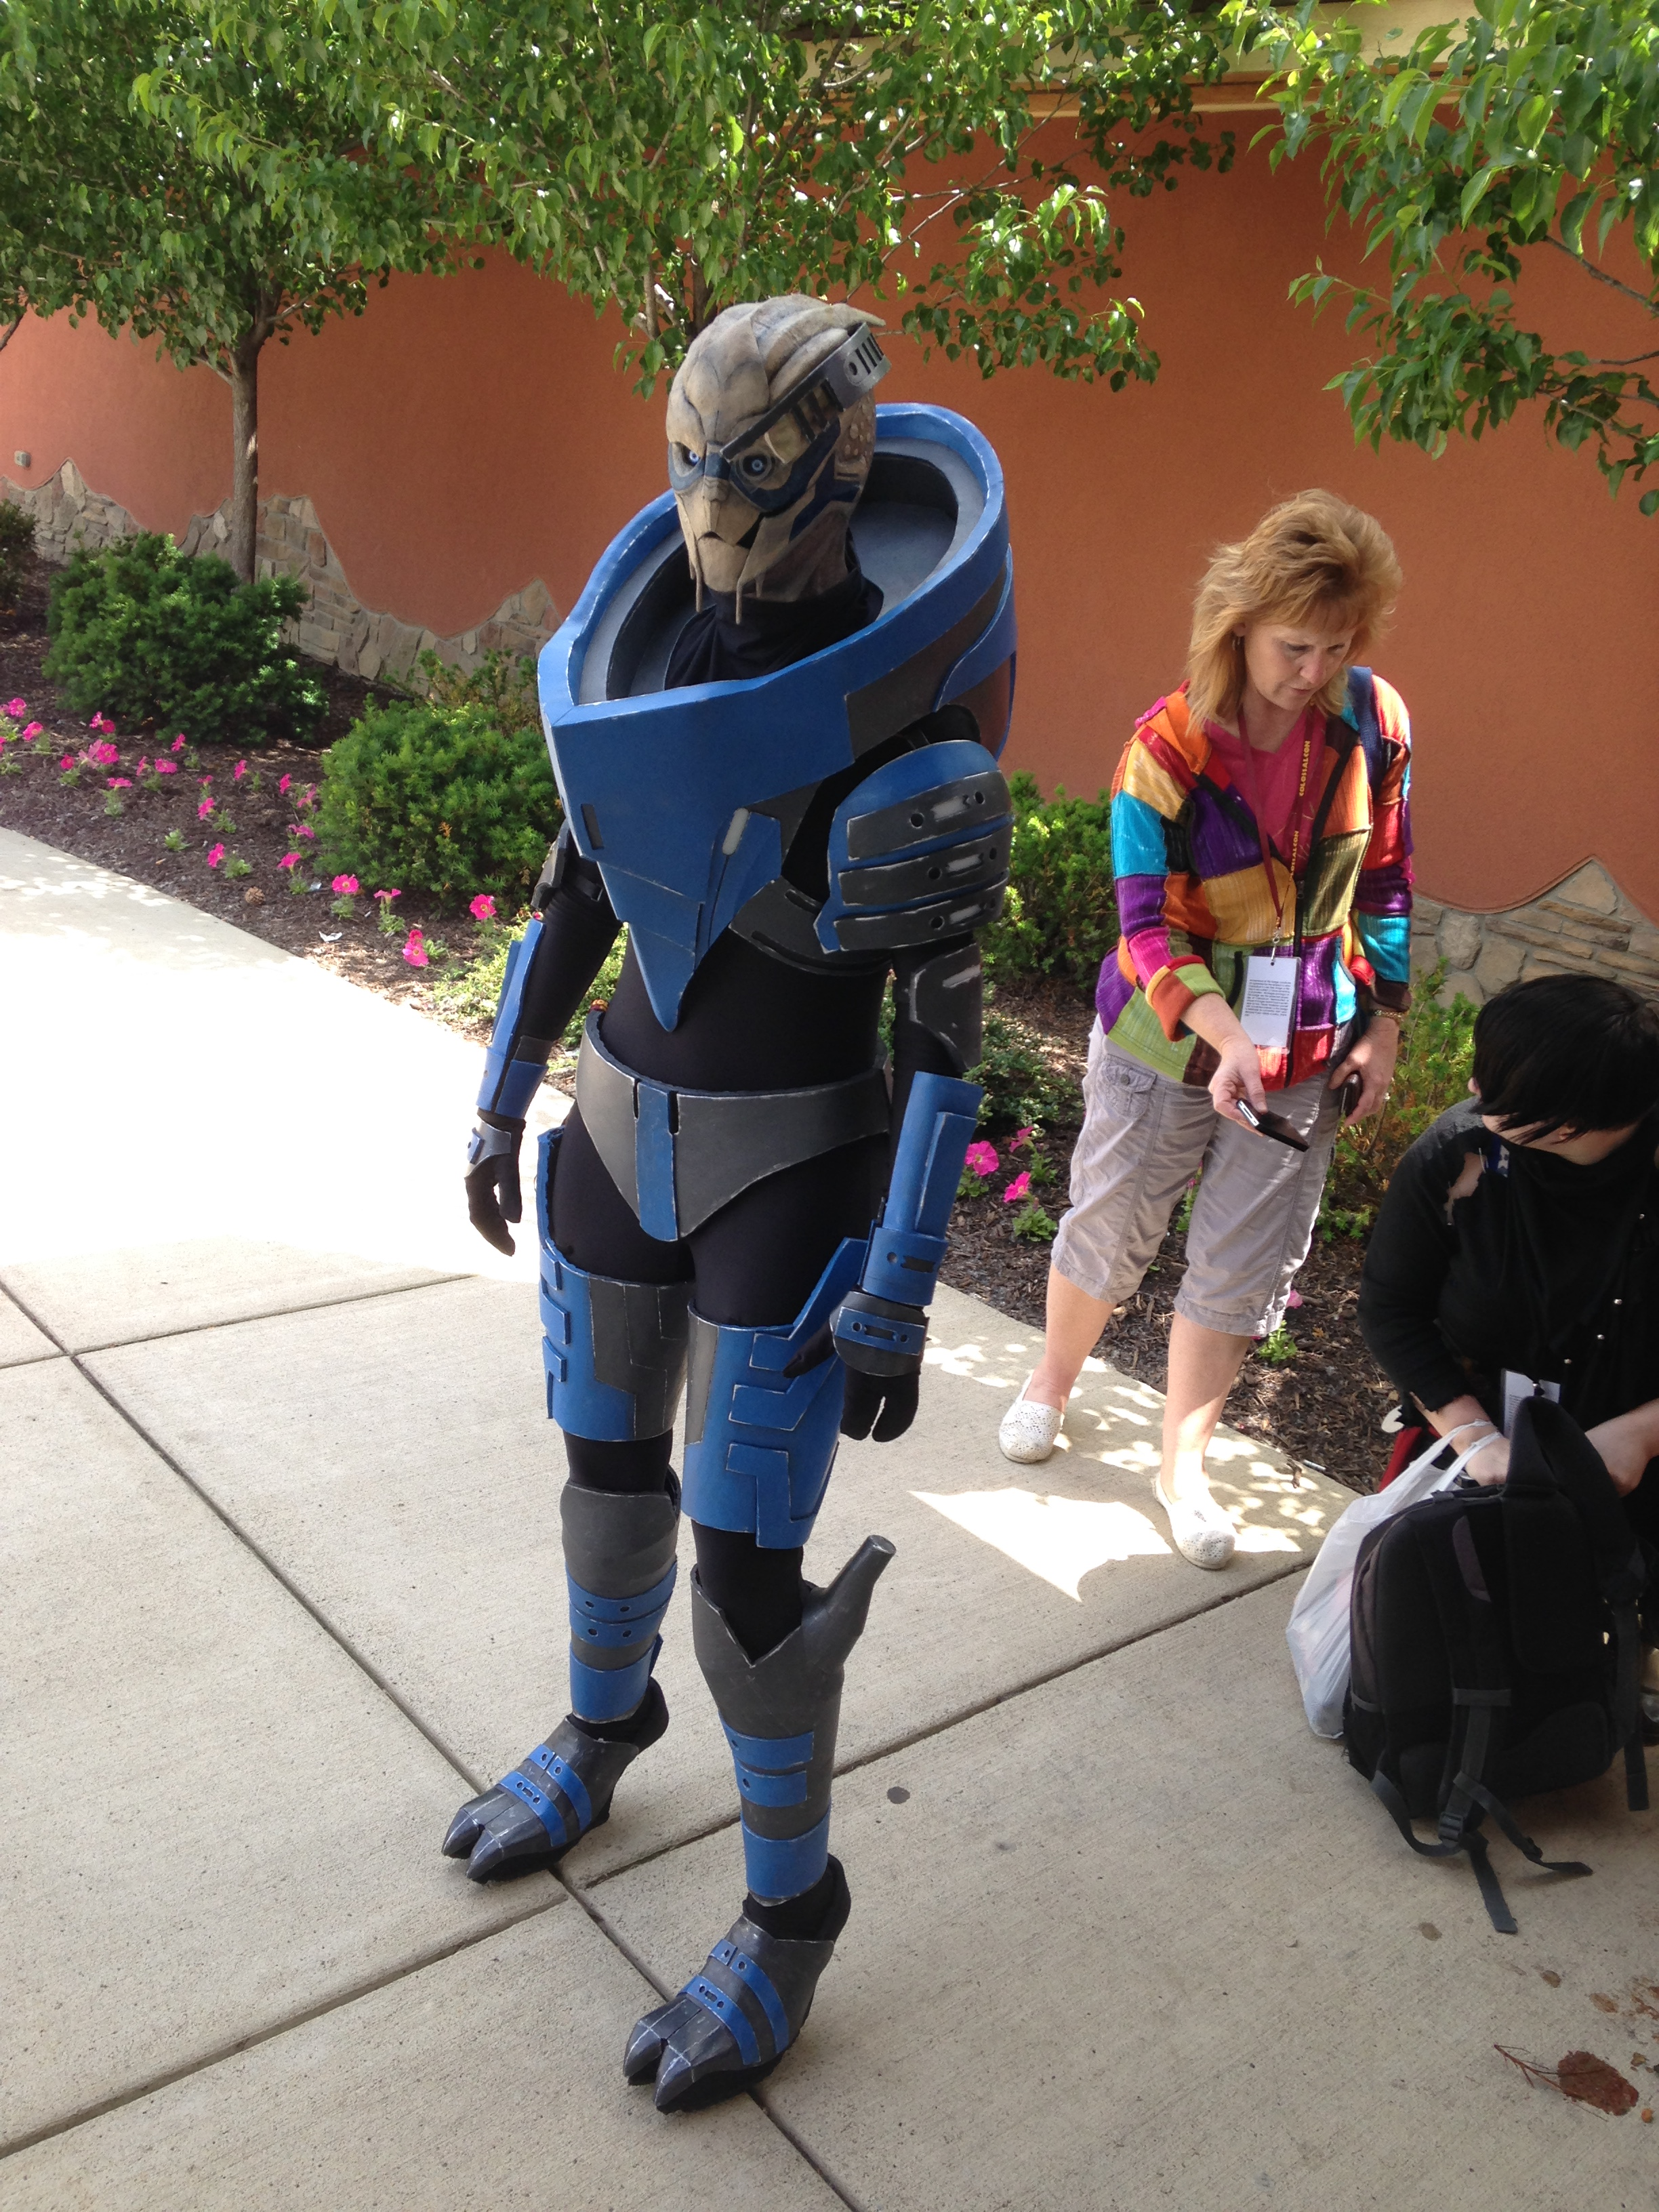 I don't even know who this character is, just that they're from Mass Effect. But what I do know is that this cosplayer is A-F***ING-MAZING! 'Nuff said.